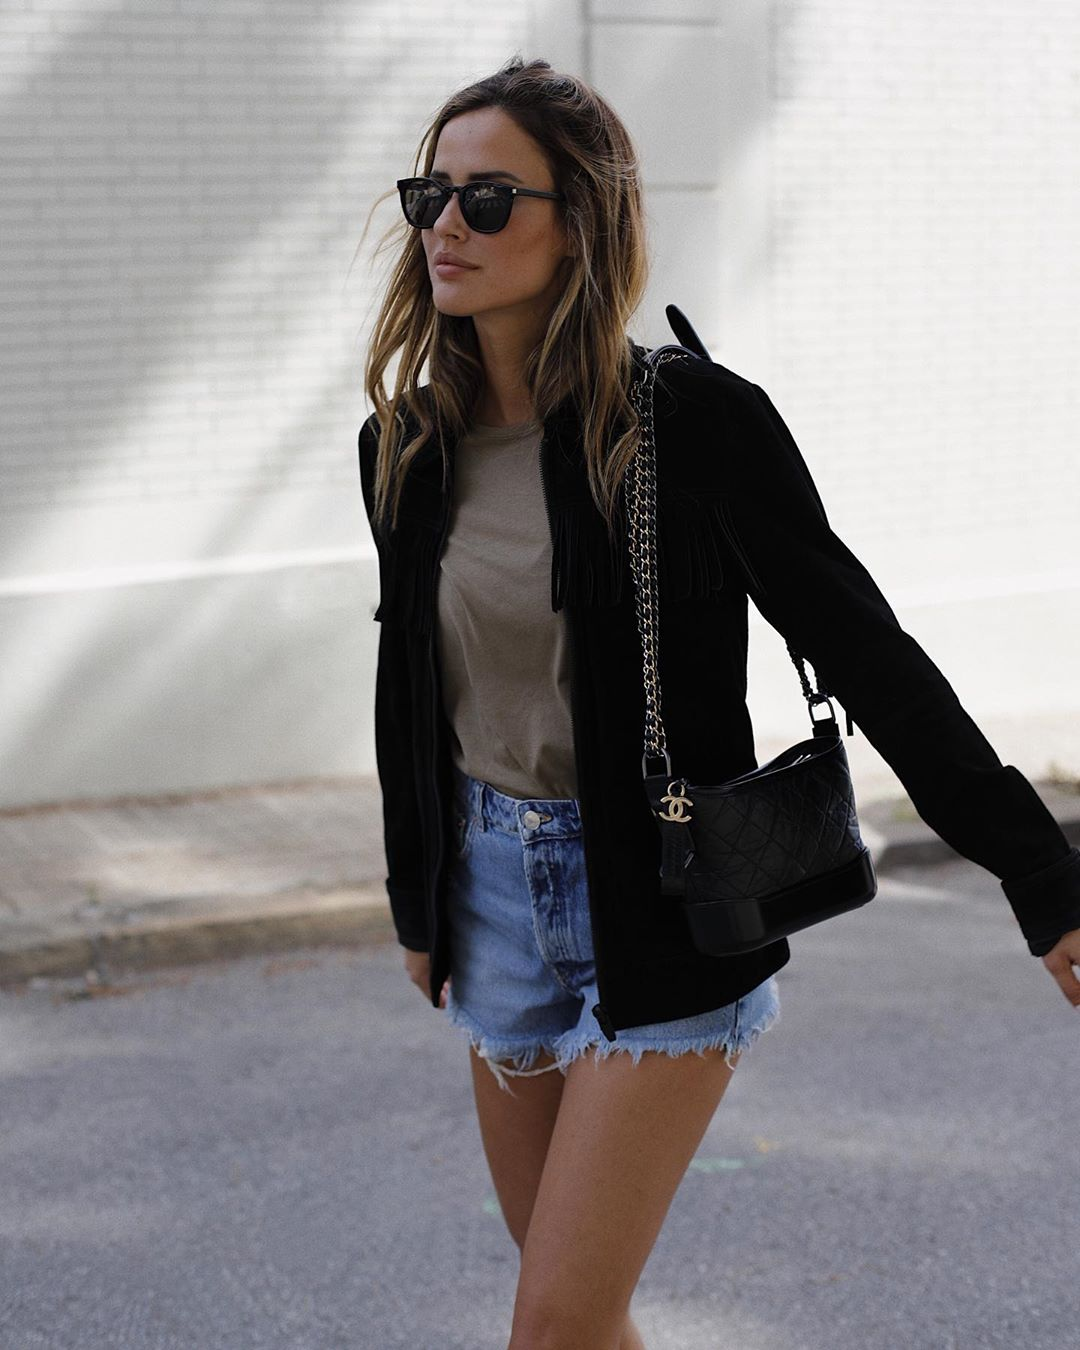 How to Transition Cutoff Shorts Into Fall — Alex Rivière in a black jacket, neutral t-shirt, and classic Chanel chain strap bag